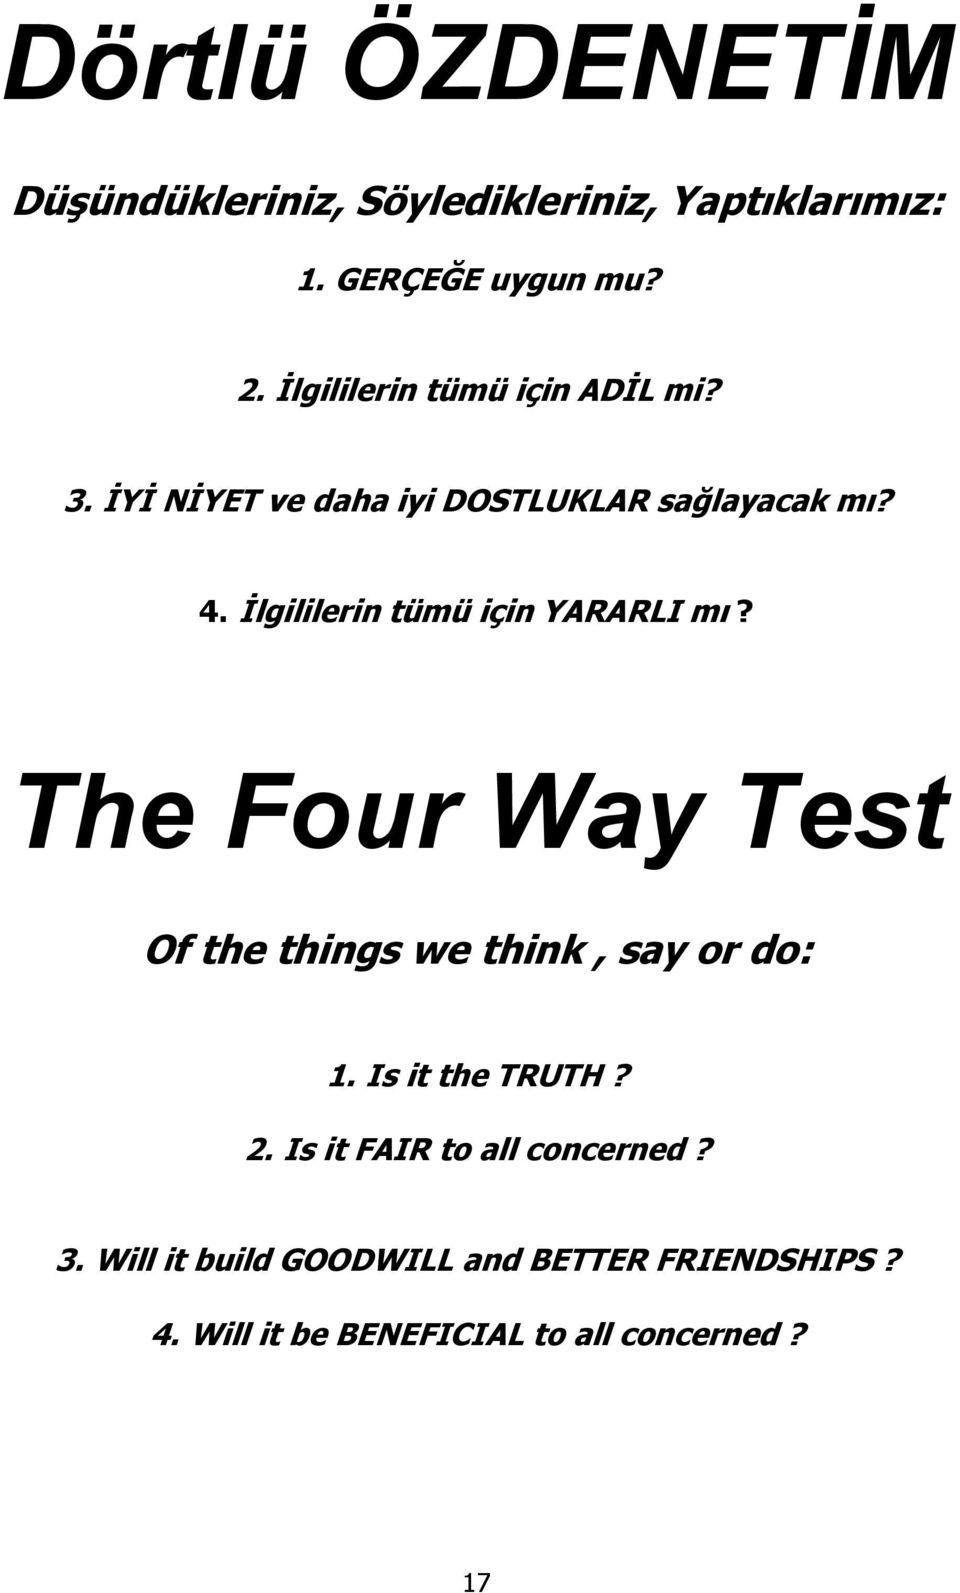 İlgililerin tümü için YARARLI mı? The Four Way Test Of the things we think, say or do: 1.